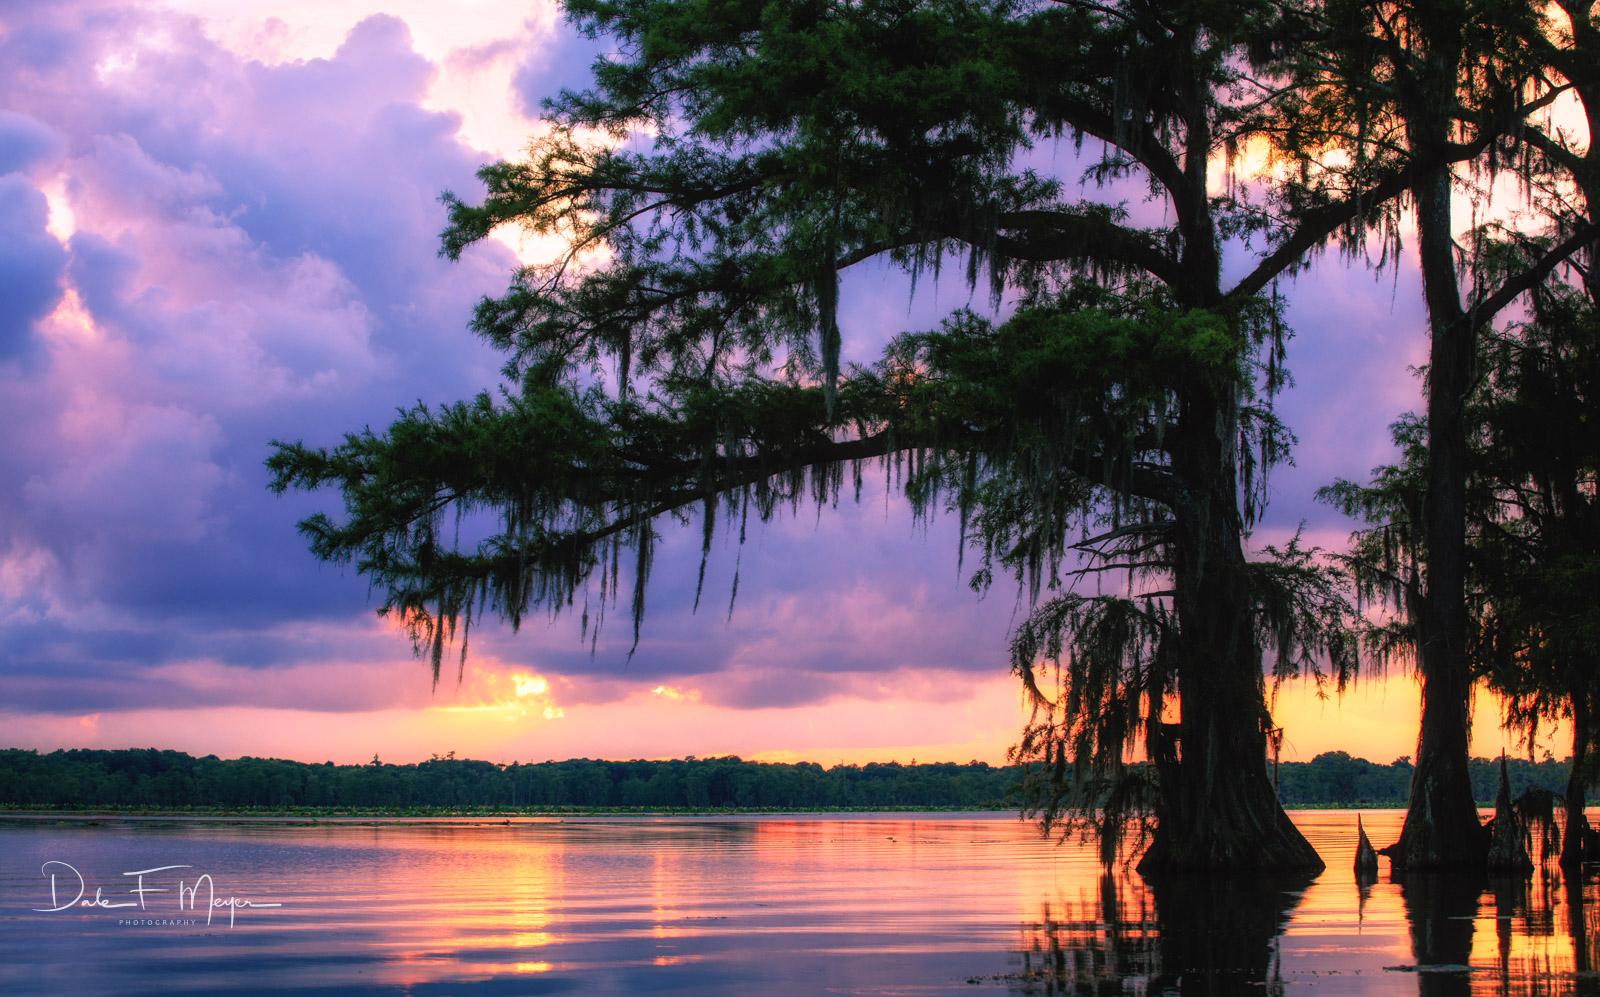 Atchafalaya River Basin Swamp, Southern Places Galerie, Summer 2016, Sunset and clouds, Swamp, cypress trees, photo